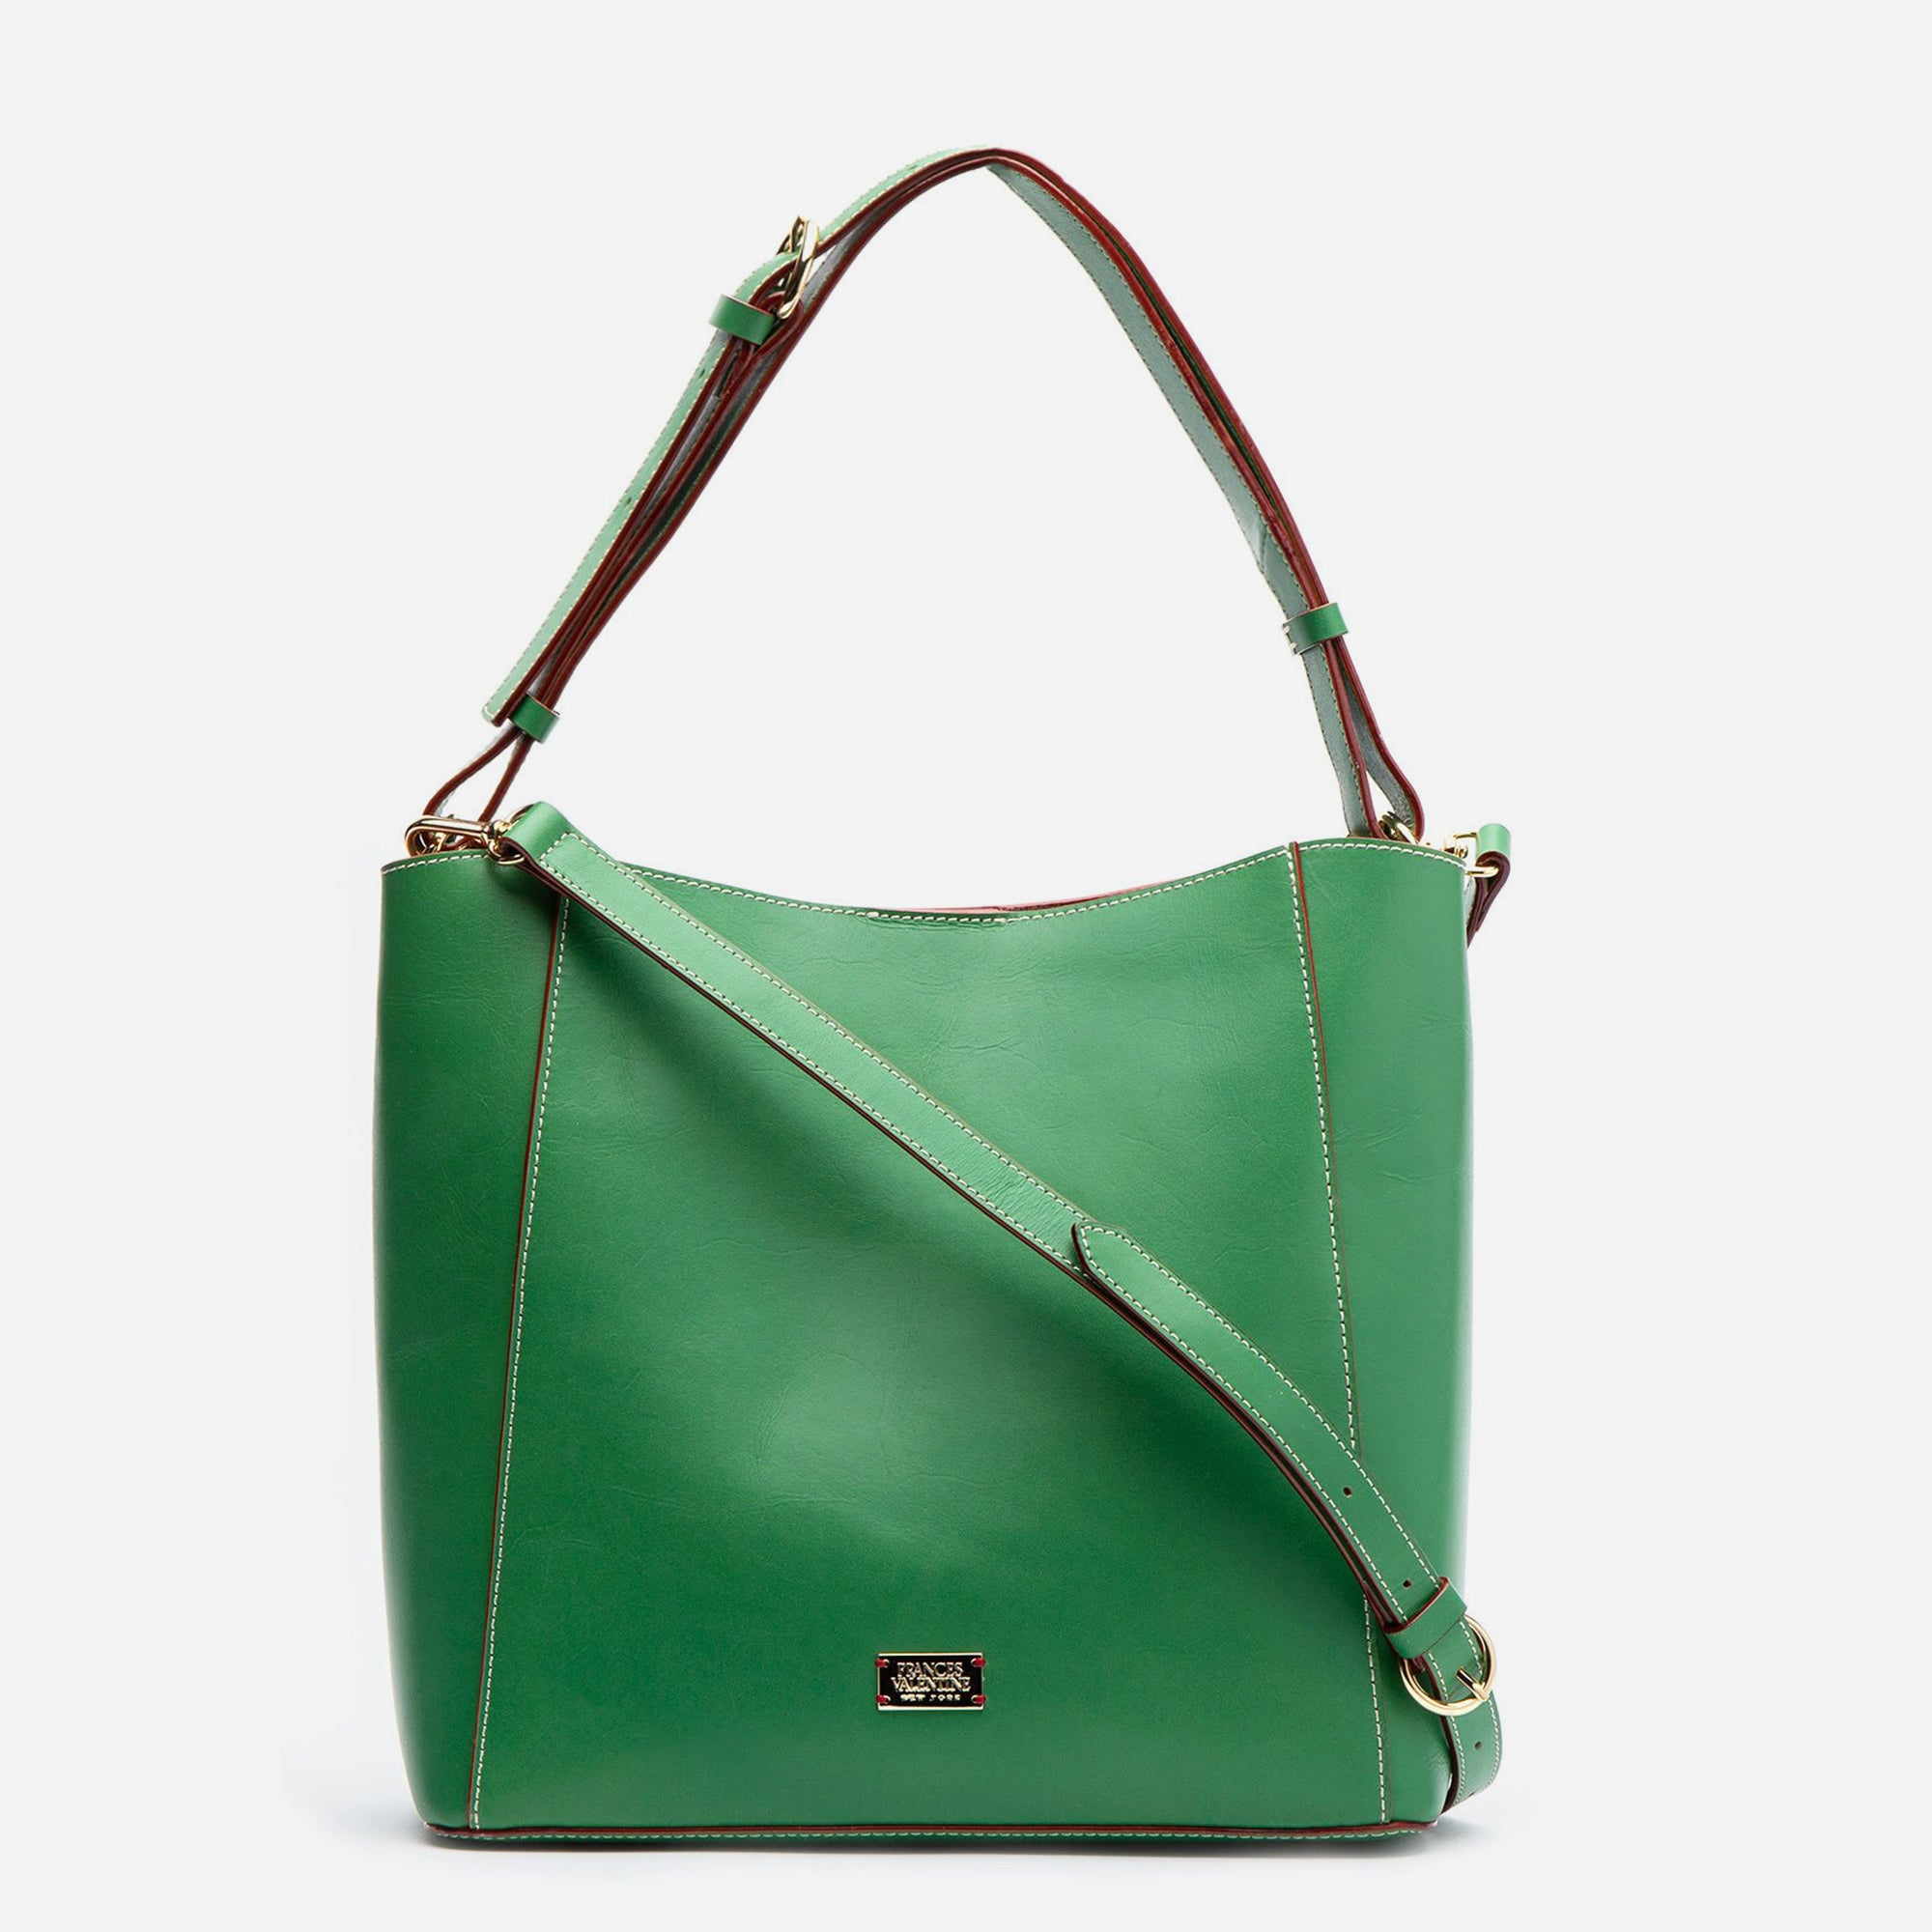 June Hobo Handbag Leather Green Ray